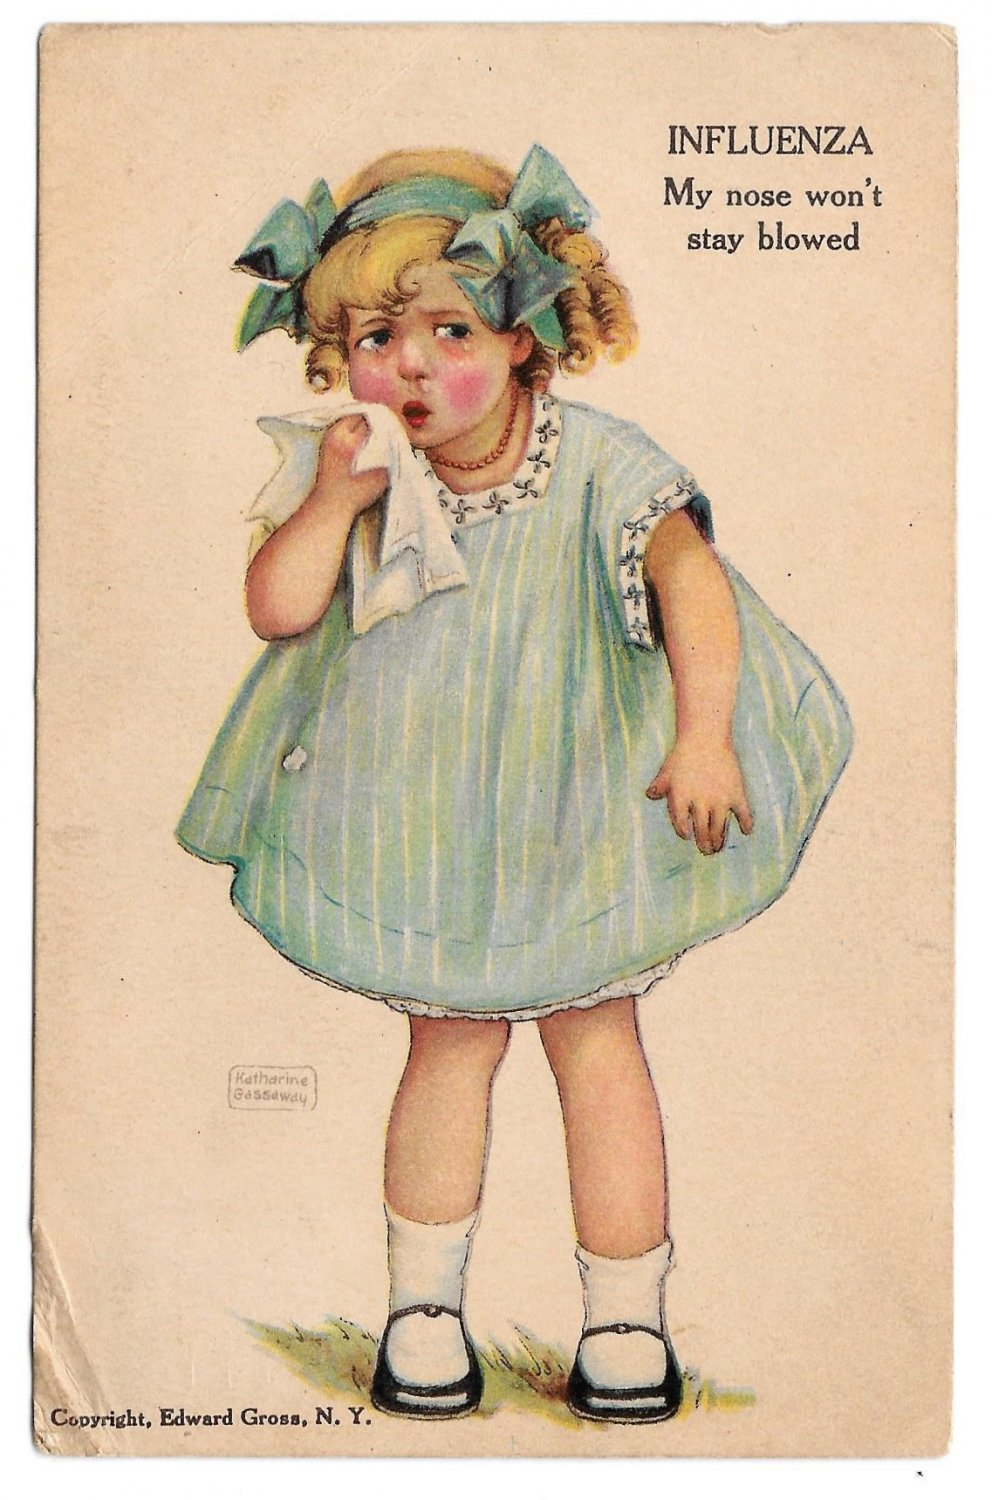 Katharine Gassaway Influenza Ailments of Childhood Series Girl My Nose Wont Stay Blowed